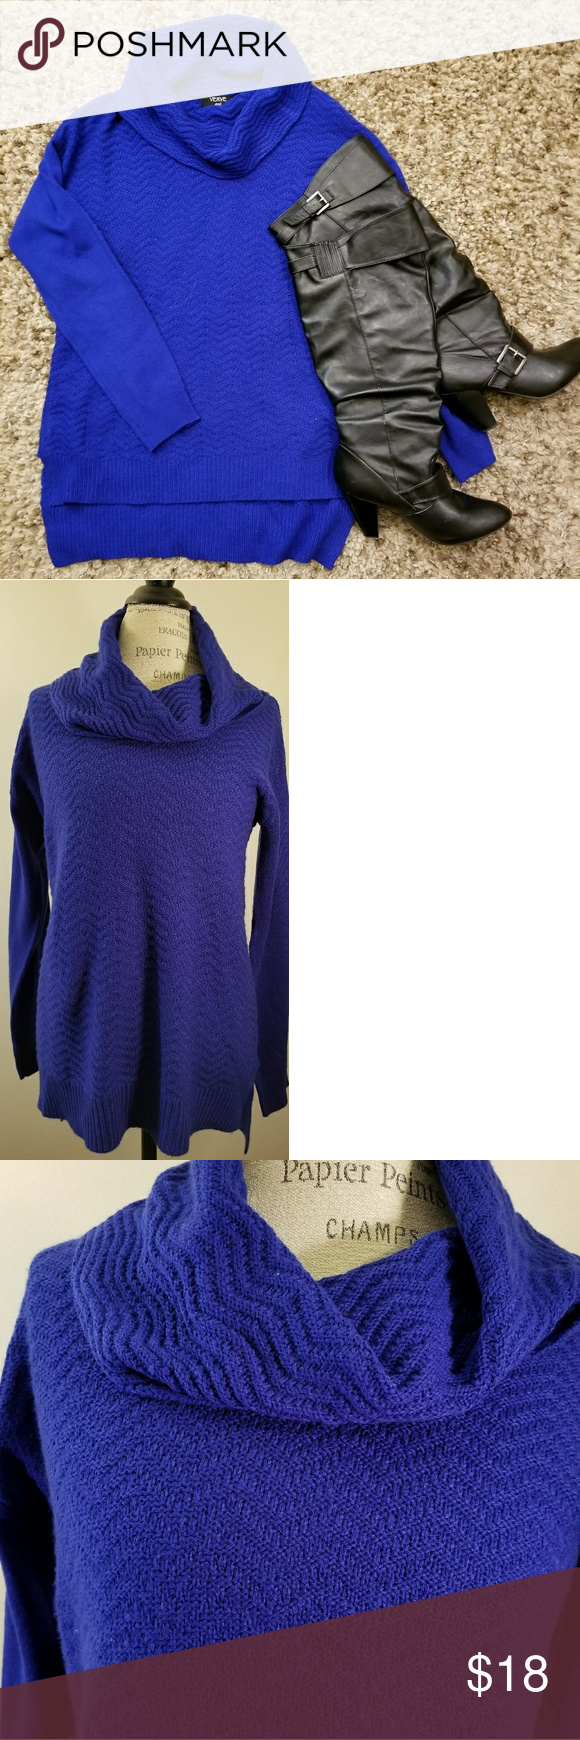 Cowl Neck Sweater- Royal Blue | Royal blue sweater, Blue sweaters ...